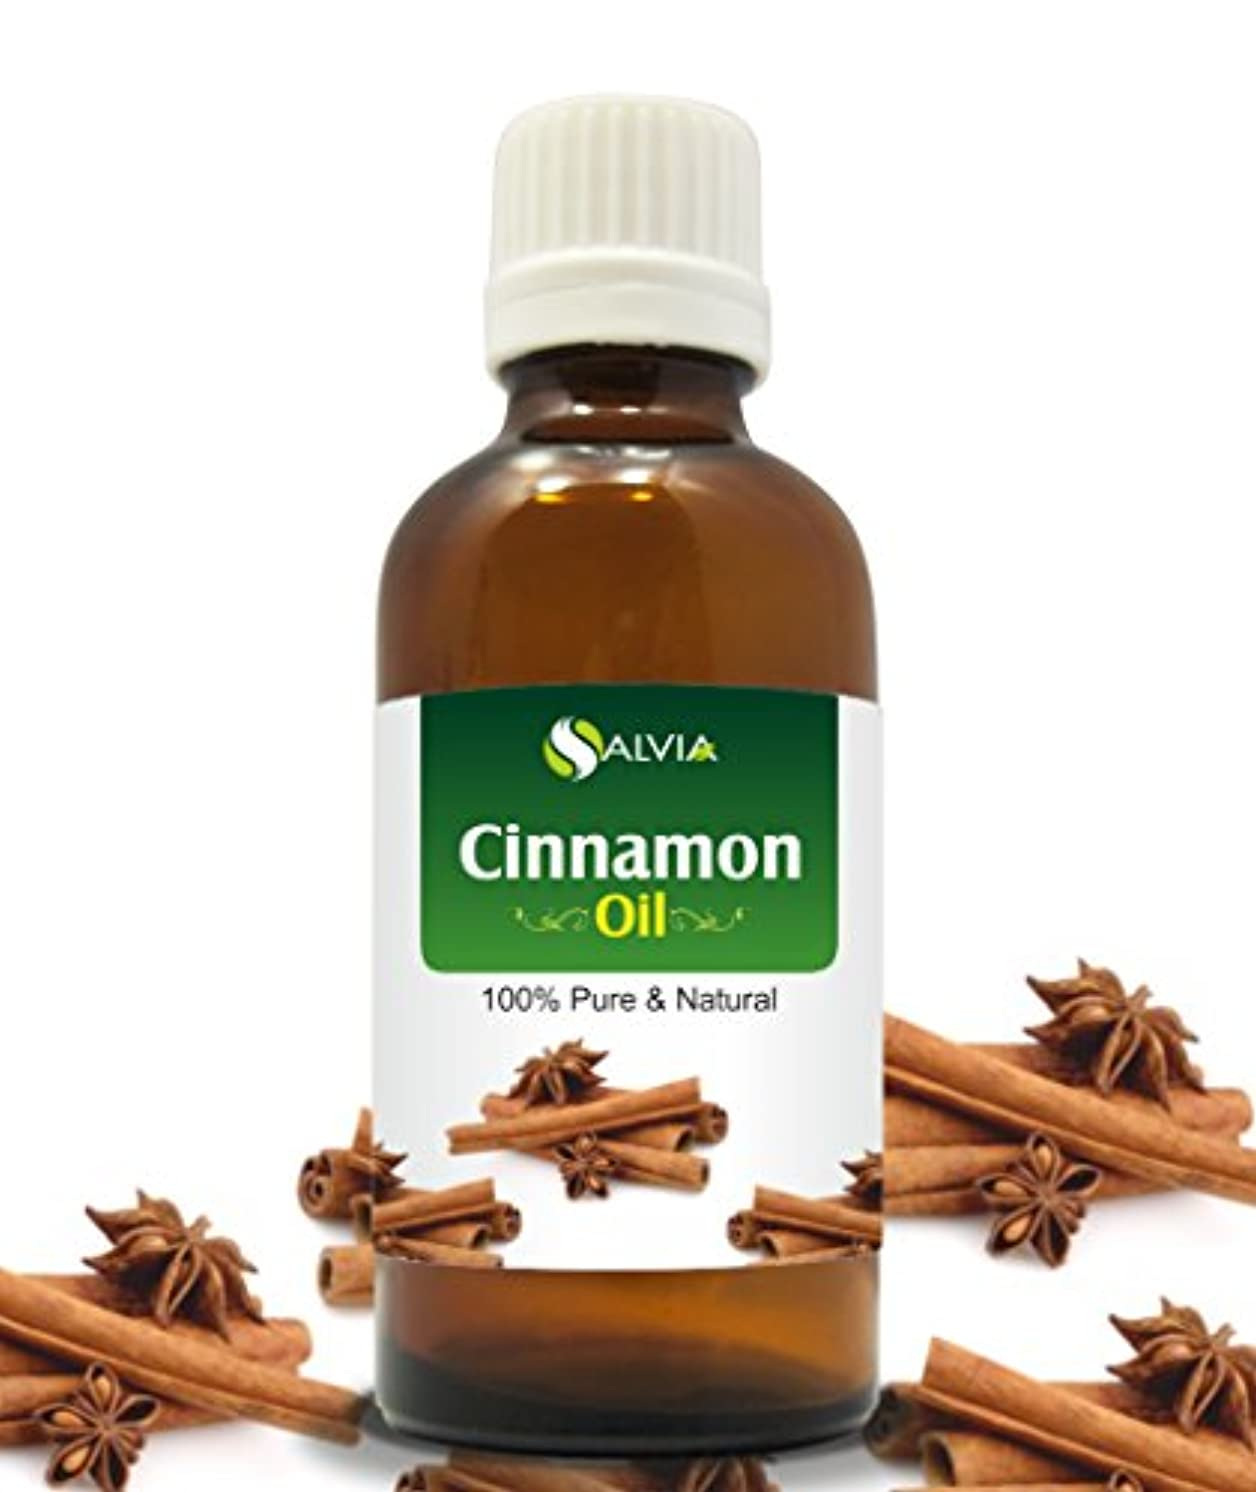 労働履歴書集まるCINNAMON OIL 100% NATURAL PURE UNDILUTED UNCUT ESSENTIAL OIL 15ML